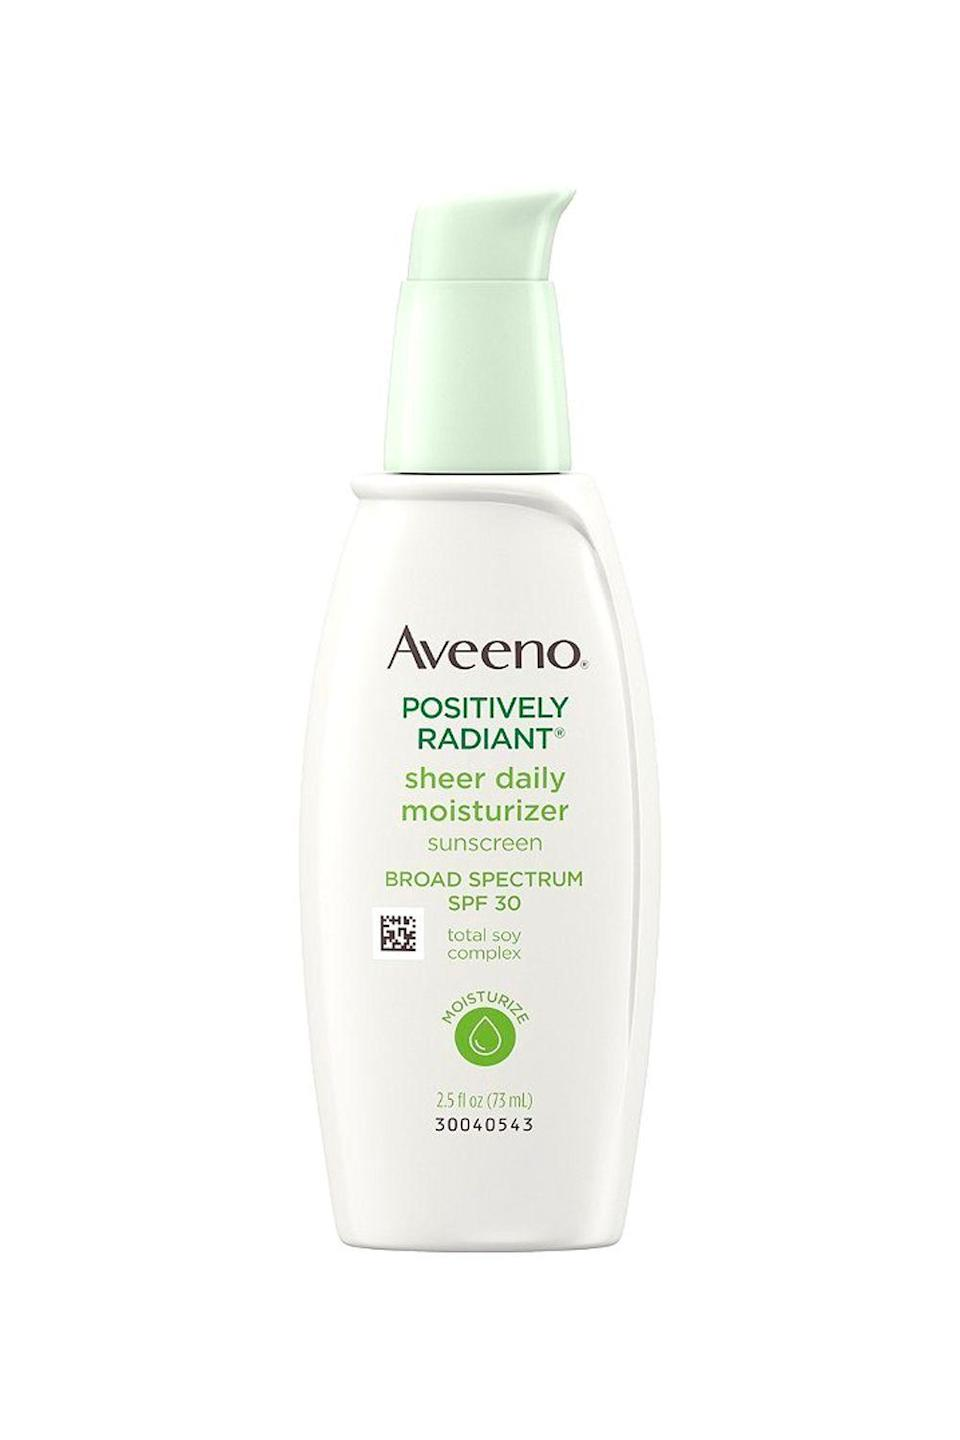 """<p><strong>Aveeno</strong></p><p>ulta.com</p><p><strong>$15.99</strong></p><p><a href=""""https://go.redirectingat.com?id=74968X1596630&url=https%3A%2F%2Fwww.ulta.com%2Fpositively-radiant-sheer-daily-moisturizer-spf-30%3FproductId%3DxlsImpprod17762083&sref=https%3A%2F%2Fwww.cosmopolitan.com%2Fstyle-beauty%2Fbeauty%2Fg36396827%2Fbest-hand-cream-with-spf%2F"""" rel=""""nofollow noopener"""" target=""""_blank"""" data-ylk=""""slk:Shop Now"""" class=""""link rapid-noclick-resp"""">Shop Now</a></p><p>Try as we might, we can't always prevent sunspots and <a href=""""https://www.cosmopolitan.com/style-beauty/beauty/a35325966/how-to-treat-hyperpigmentation-deep-skin/"""" rel=""""nofollow noopener"""" target=""""_blank"""" data-ylk=""""slk:hyperpigmentation"""" class=""""link rapid-noclick-resp"""">hyperpigmentation</a>. This SPF hand cream is equipped with <strong>soybean extract to help fight discoloration,</strong> while the SPF 30 works its magic to protect you from developing more later on.</p>"""